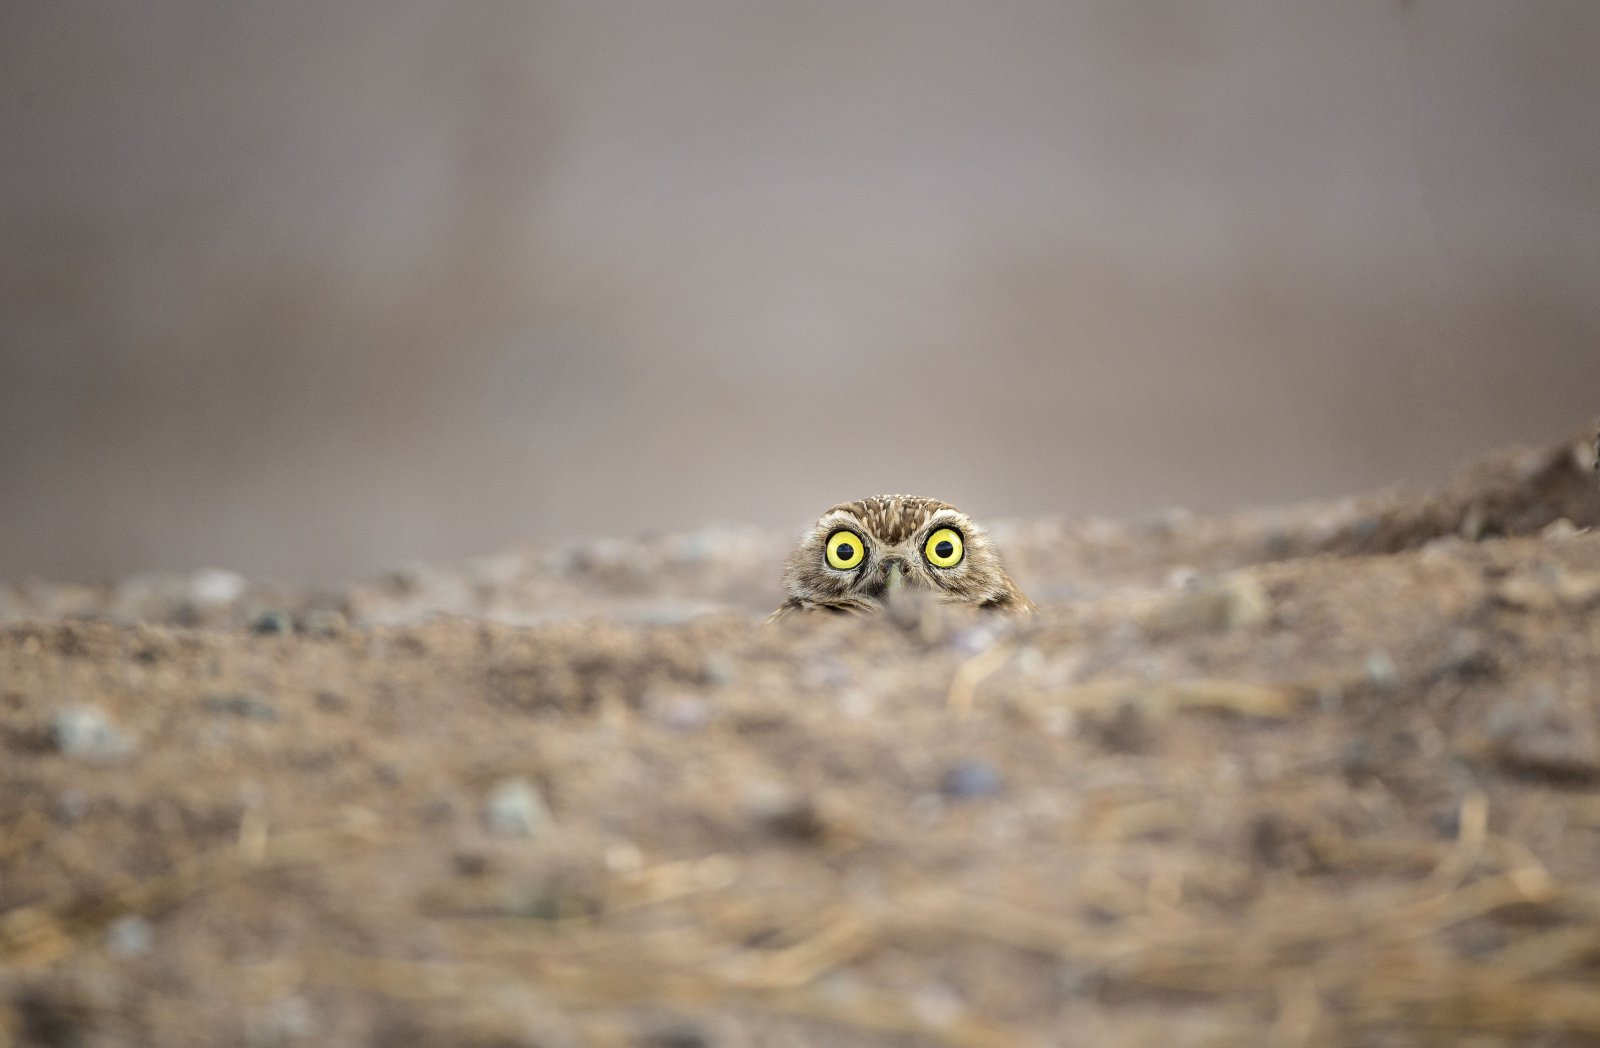 Peek-a-boo, © Shane Keena, Spectrum Photo Creatures in the Air Category Winner, Comedy Wildlife Photography Awards